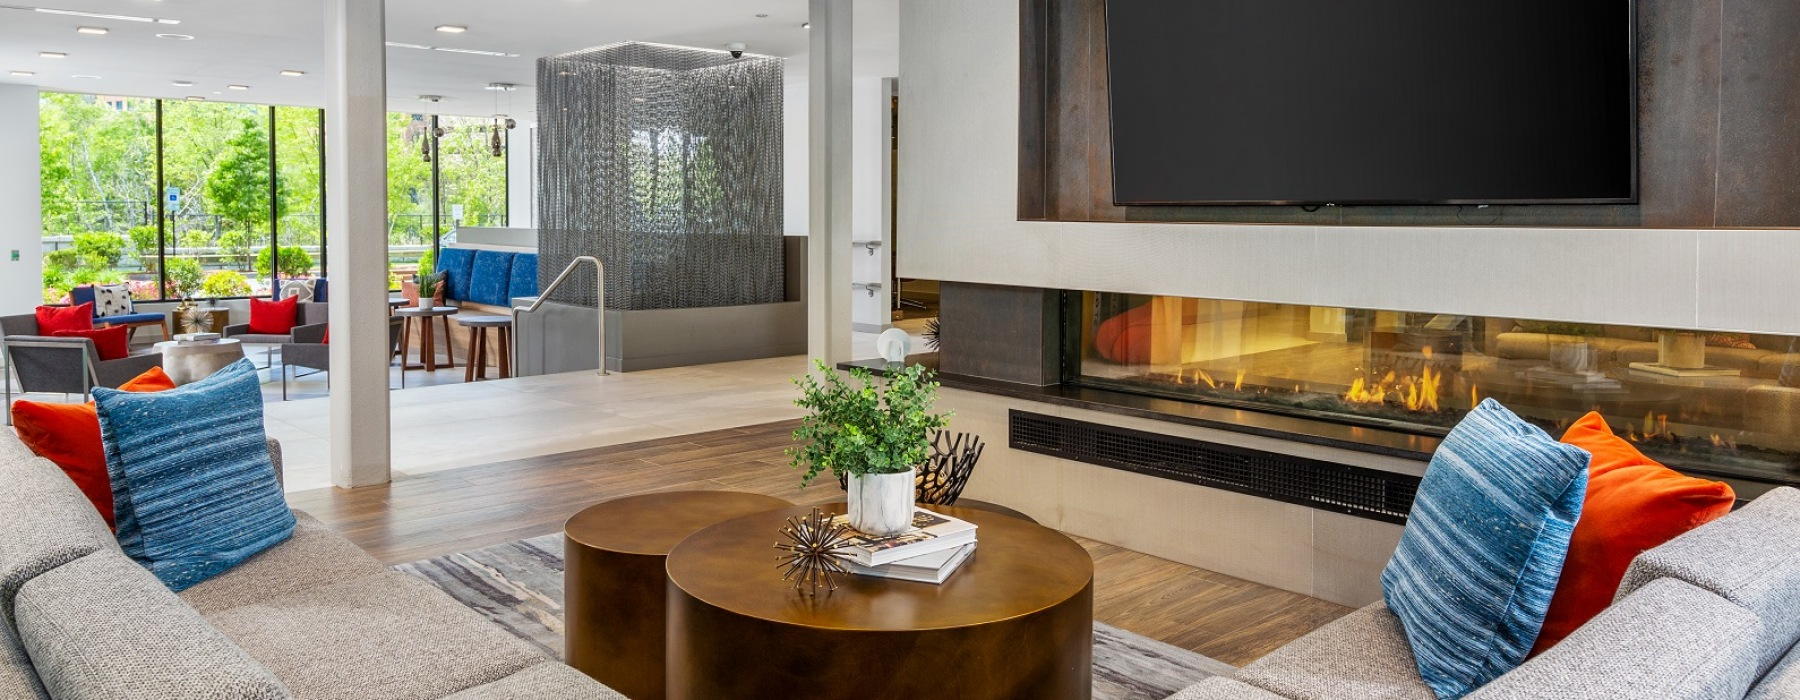 Resident lounge area with fireplace, flatscreen TV and seating